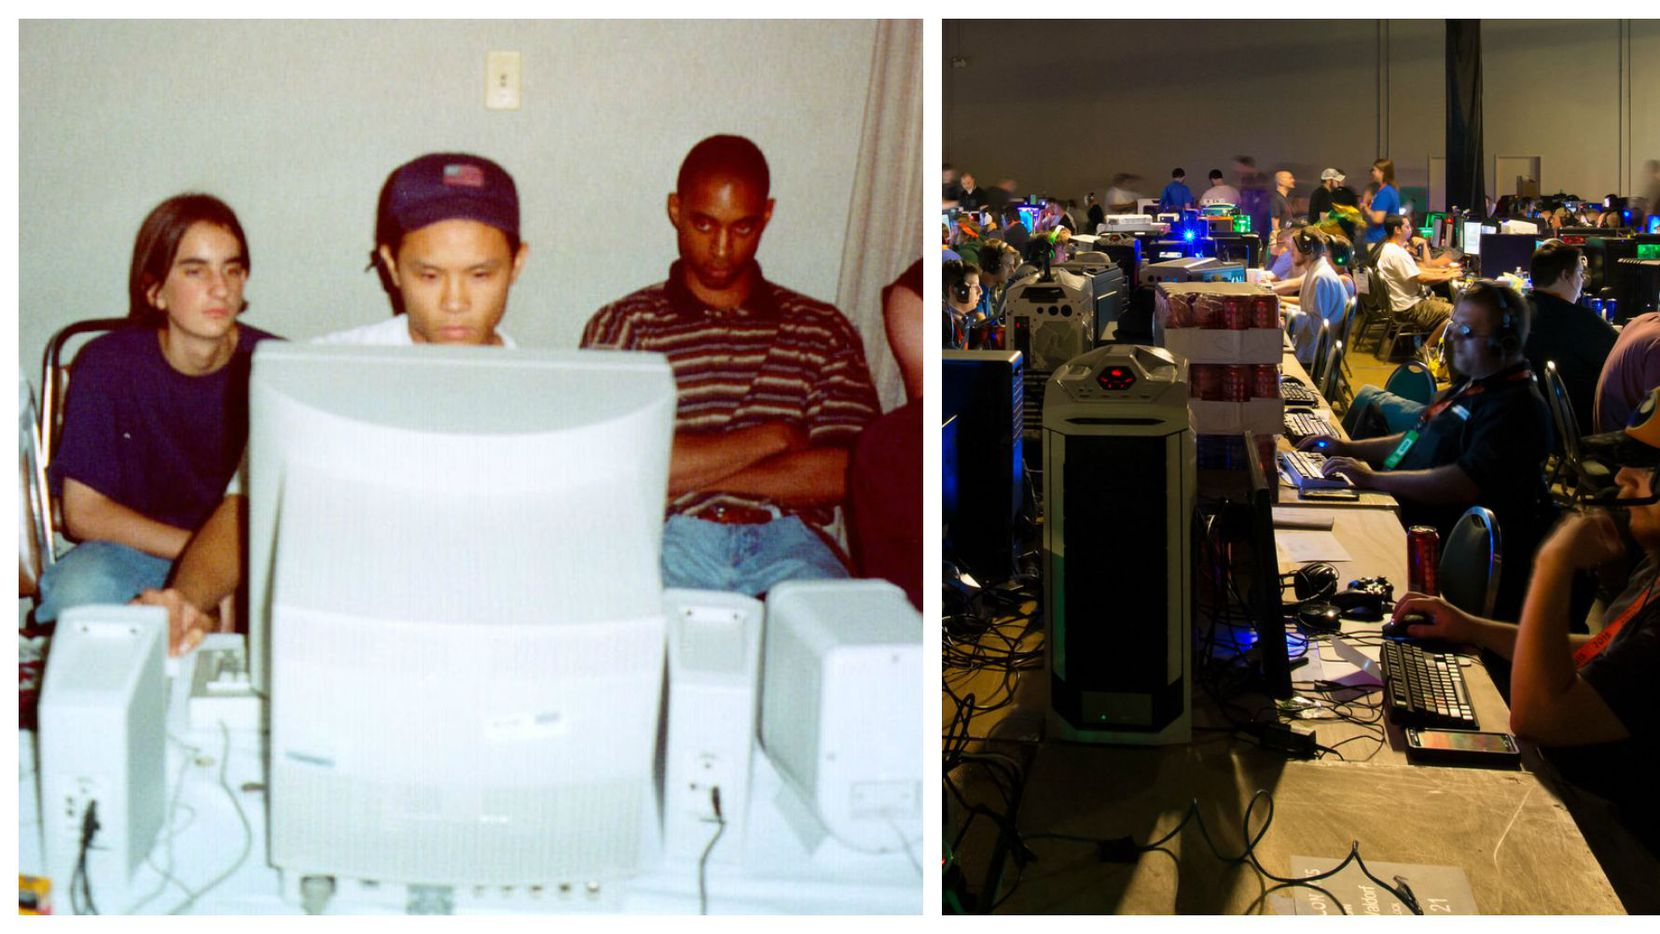 """Left: A photo from the original QuakeCon in 1996 from Brian """"Wendigo"""" Hess.. Right: A photo from QuakeCon 2015 from Larry """"Neocane"""" Gipson"""